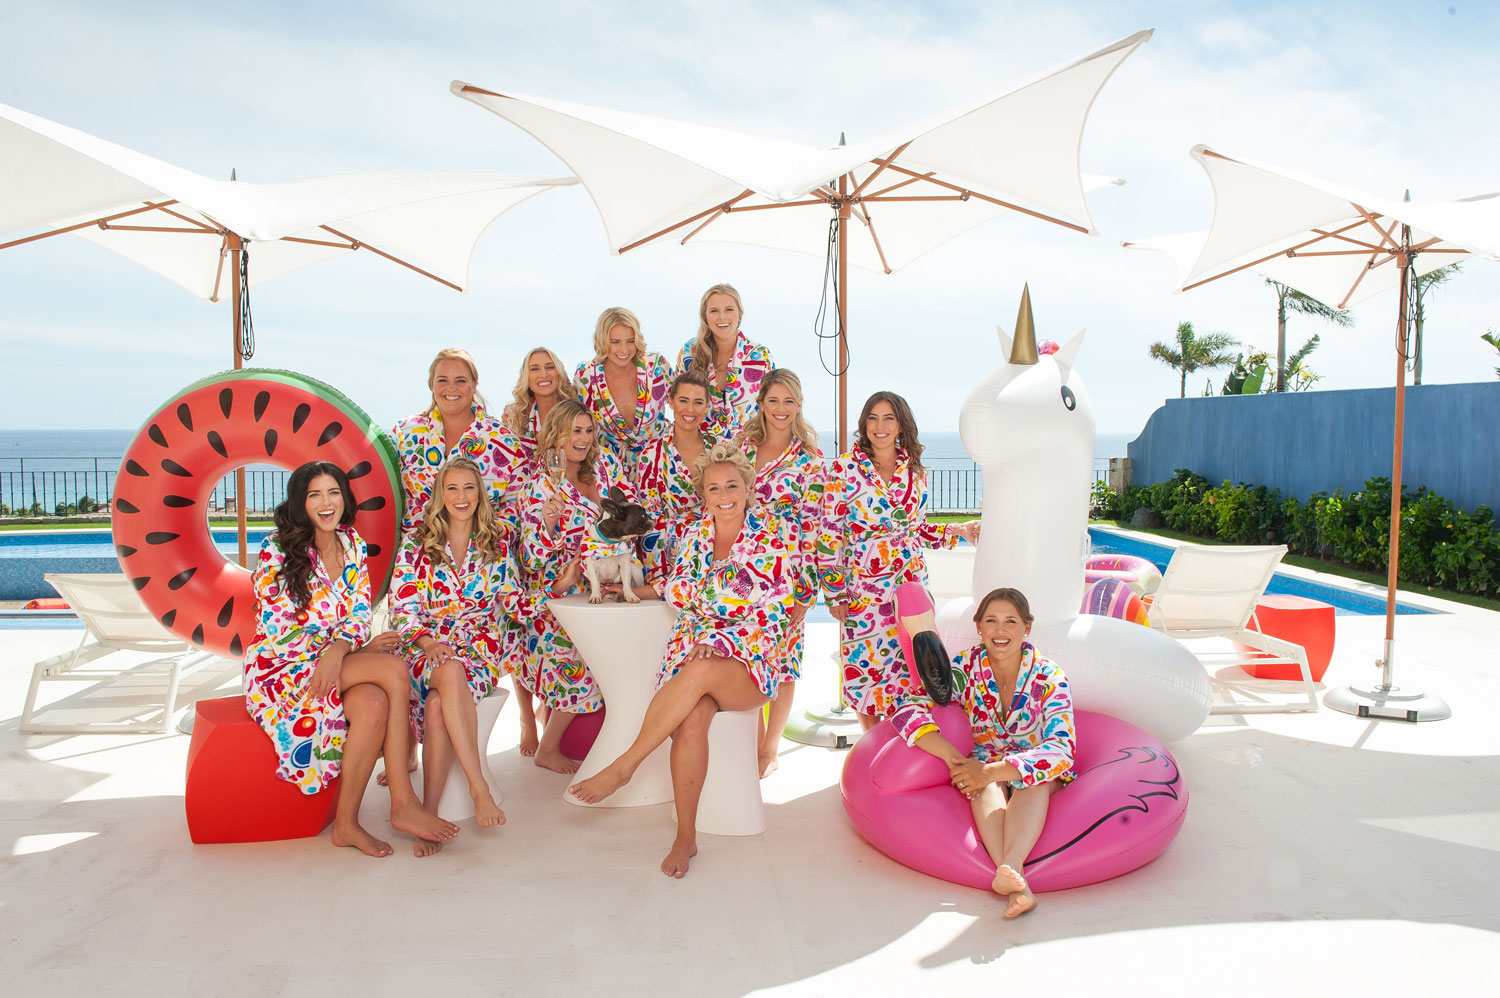 tips for planning a bachelorette party, how to get started planning a bachelorette party